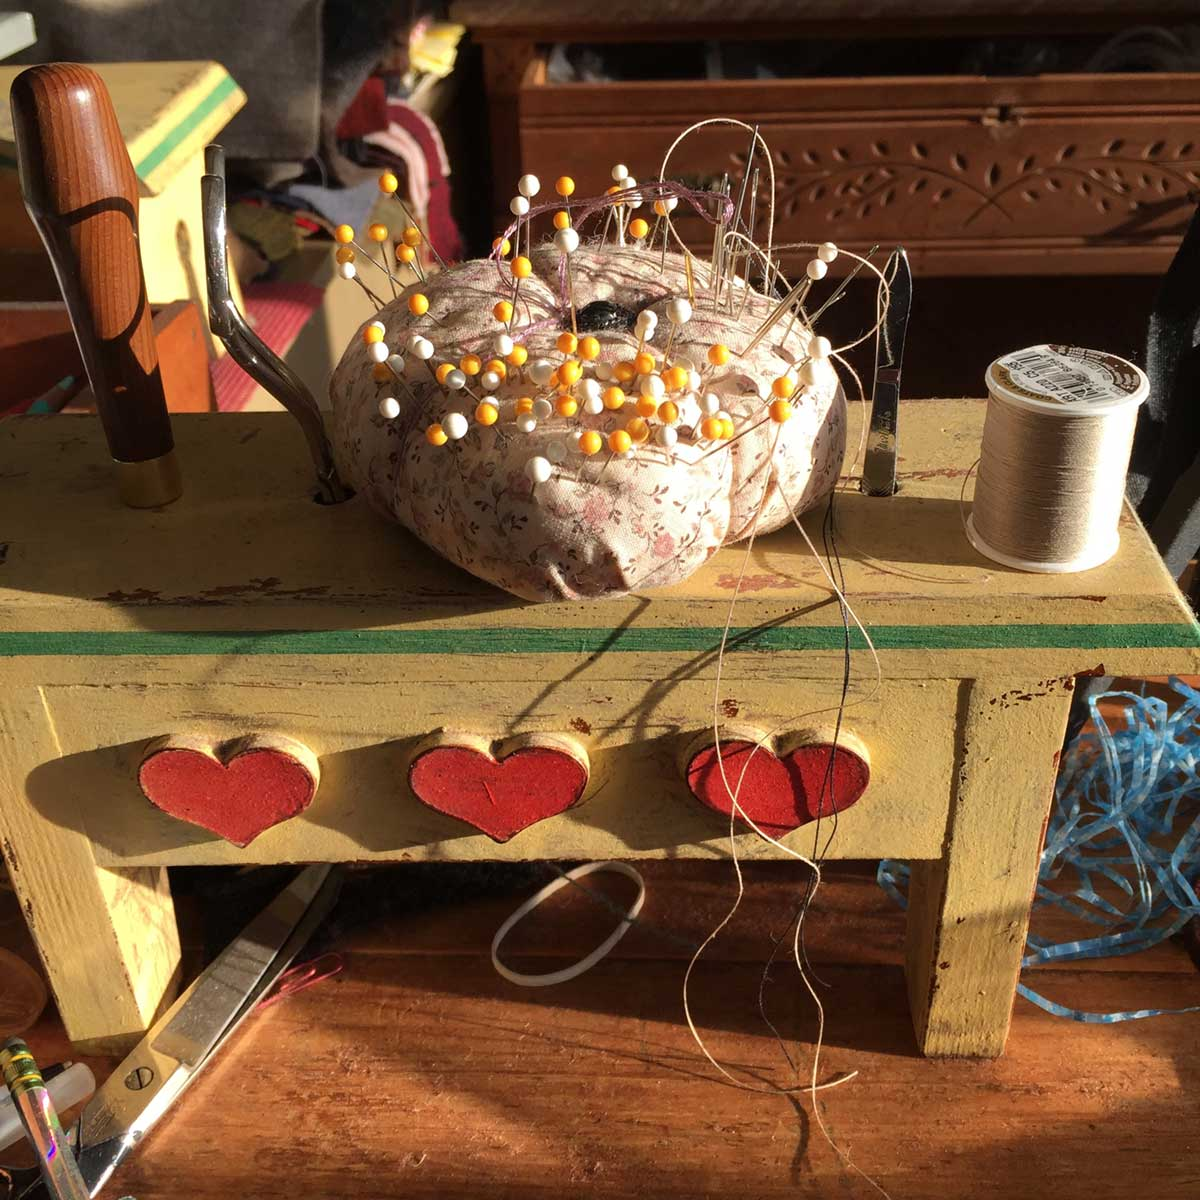 Pin cushion and tool stand for making a hooked rug